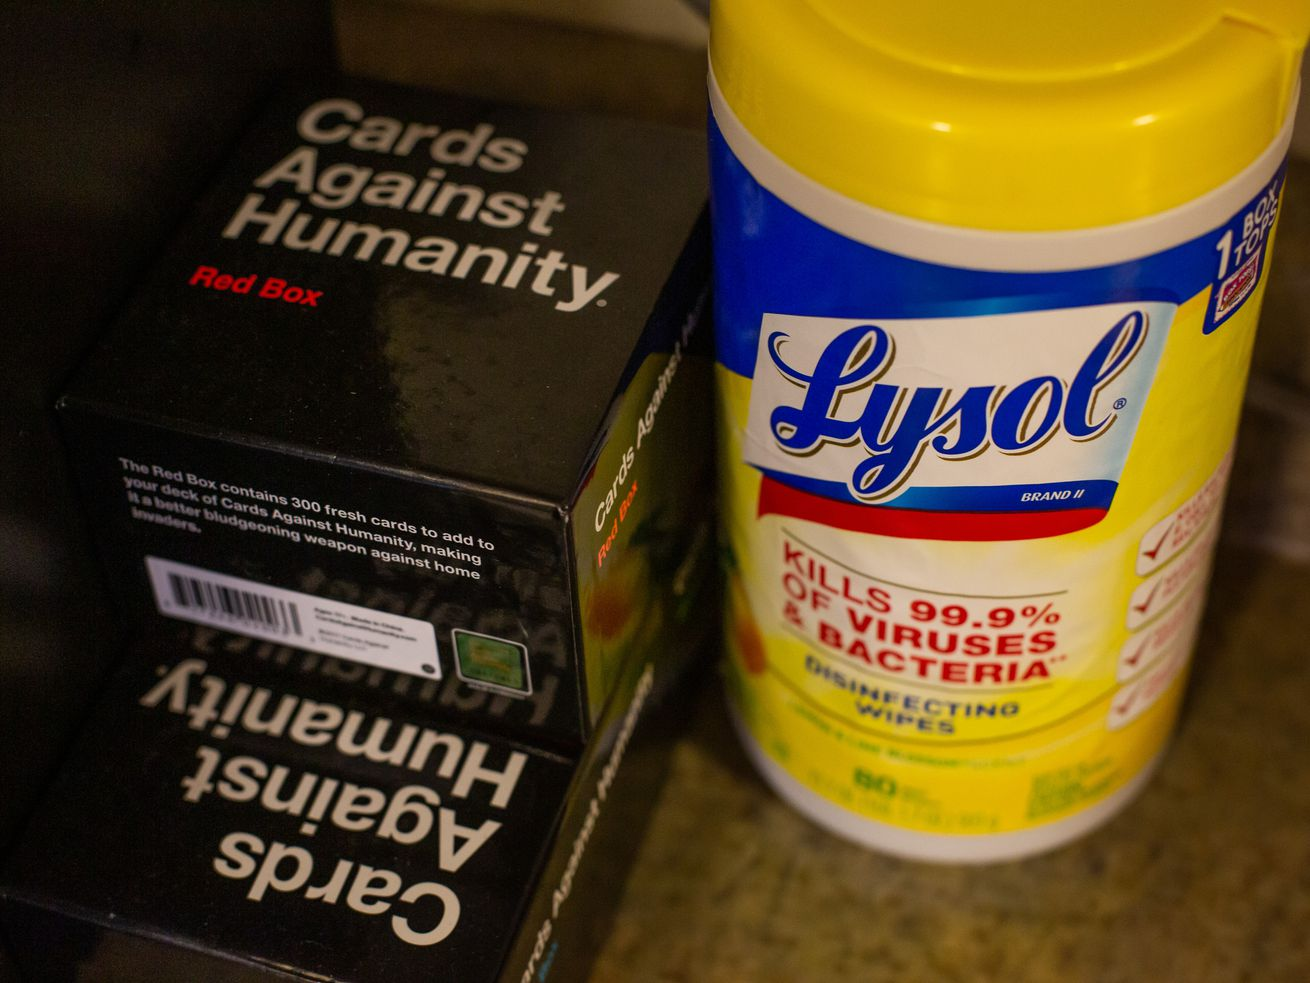 Lysol wipes and a Cards Against Humanity game sit on a counter together.